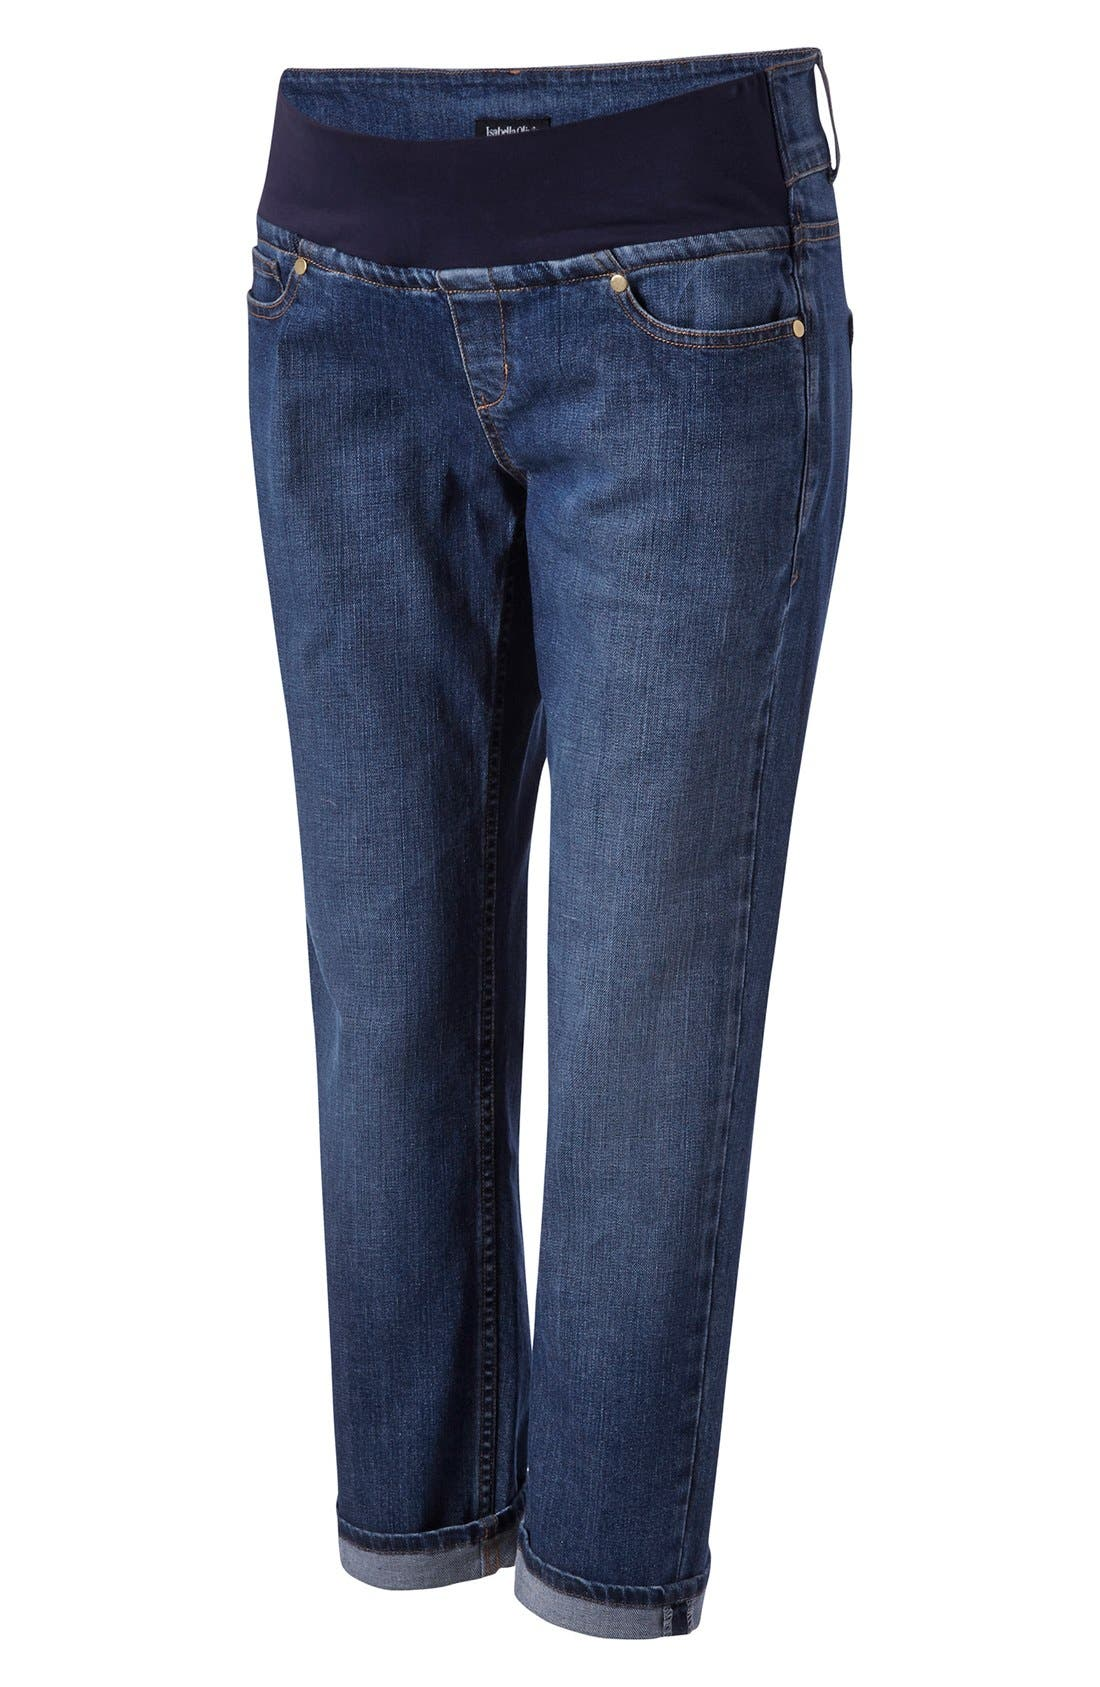 Relaxed Maternity Jeans,                         Main,                         color, Washed Indigo